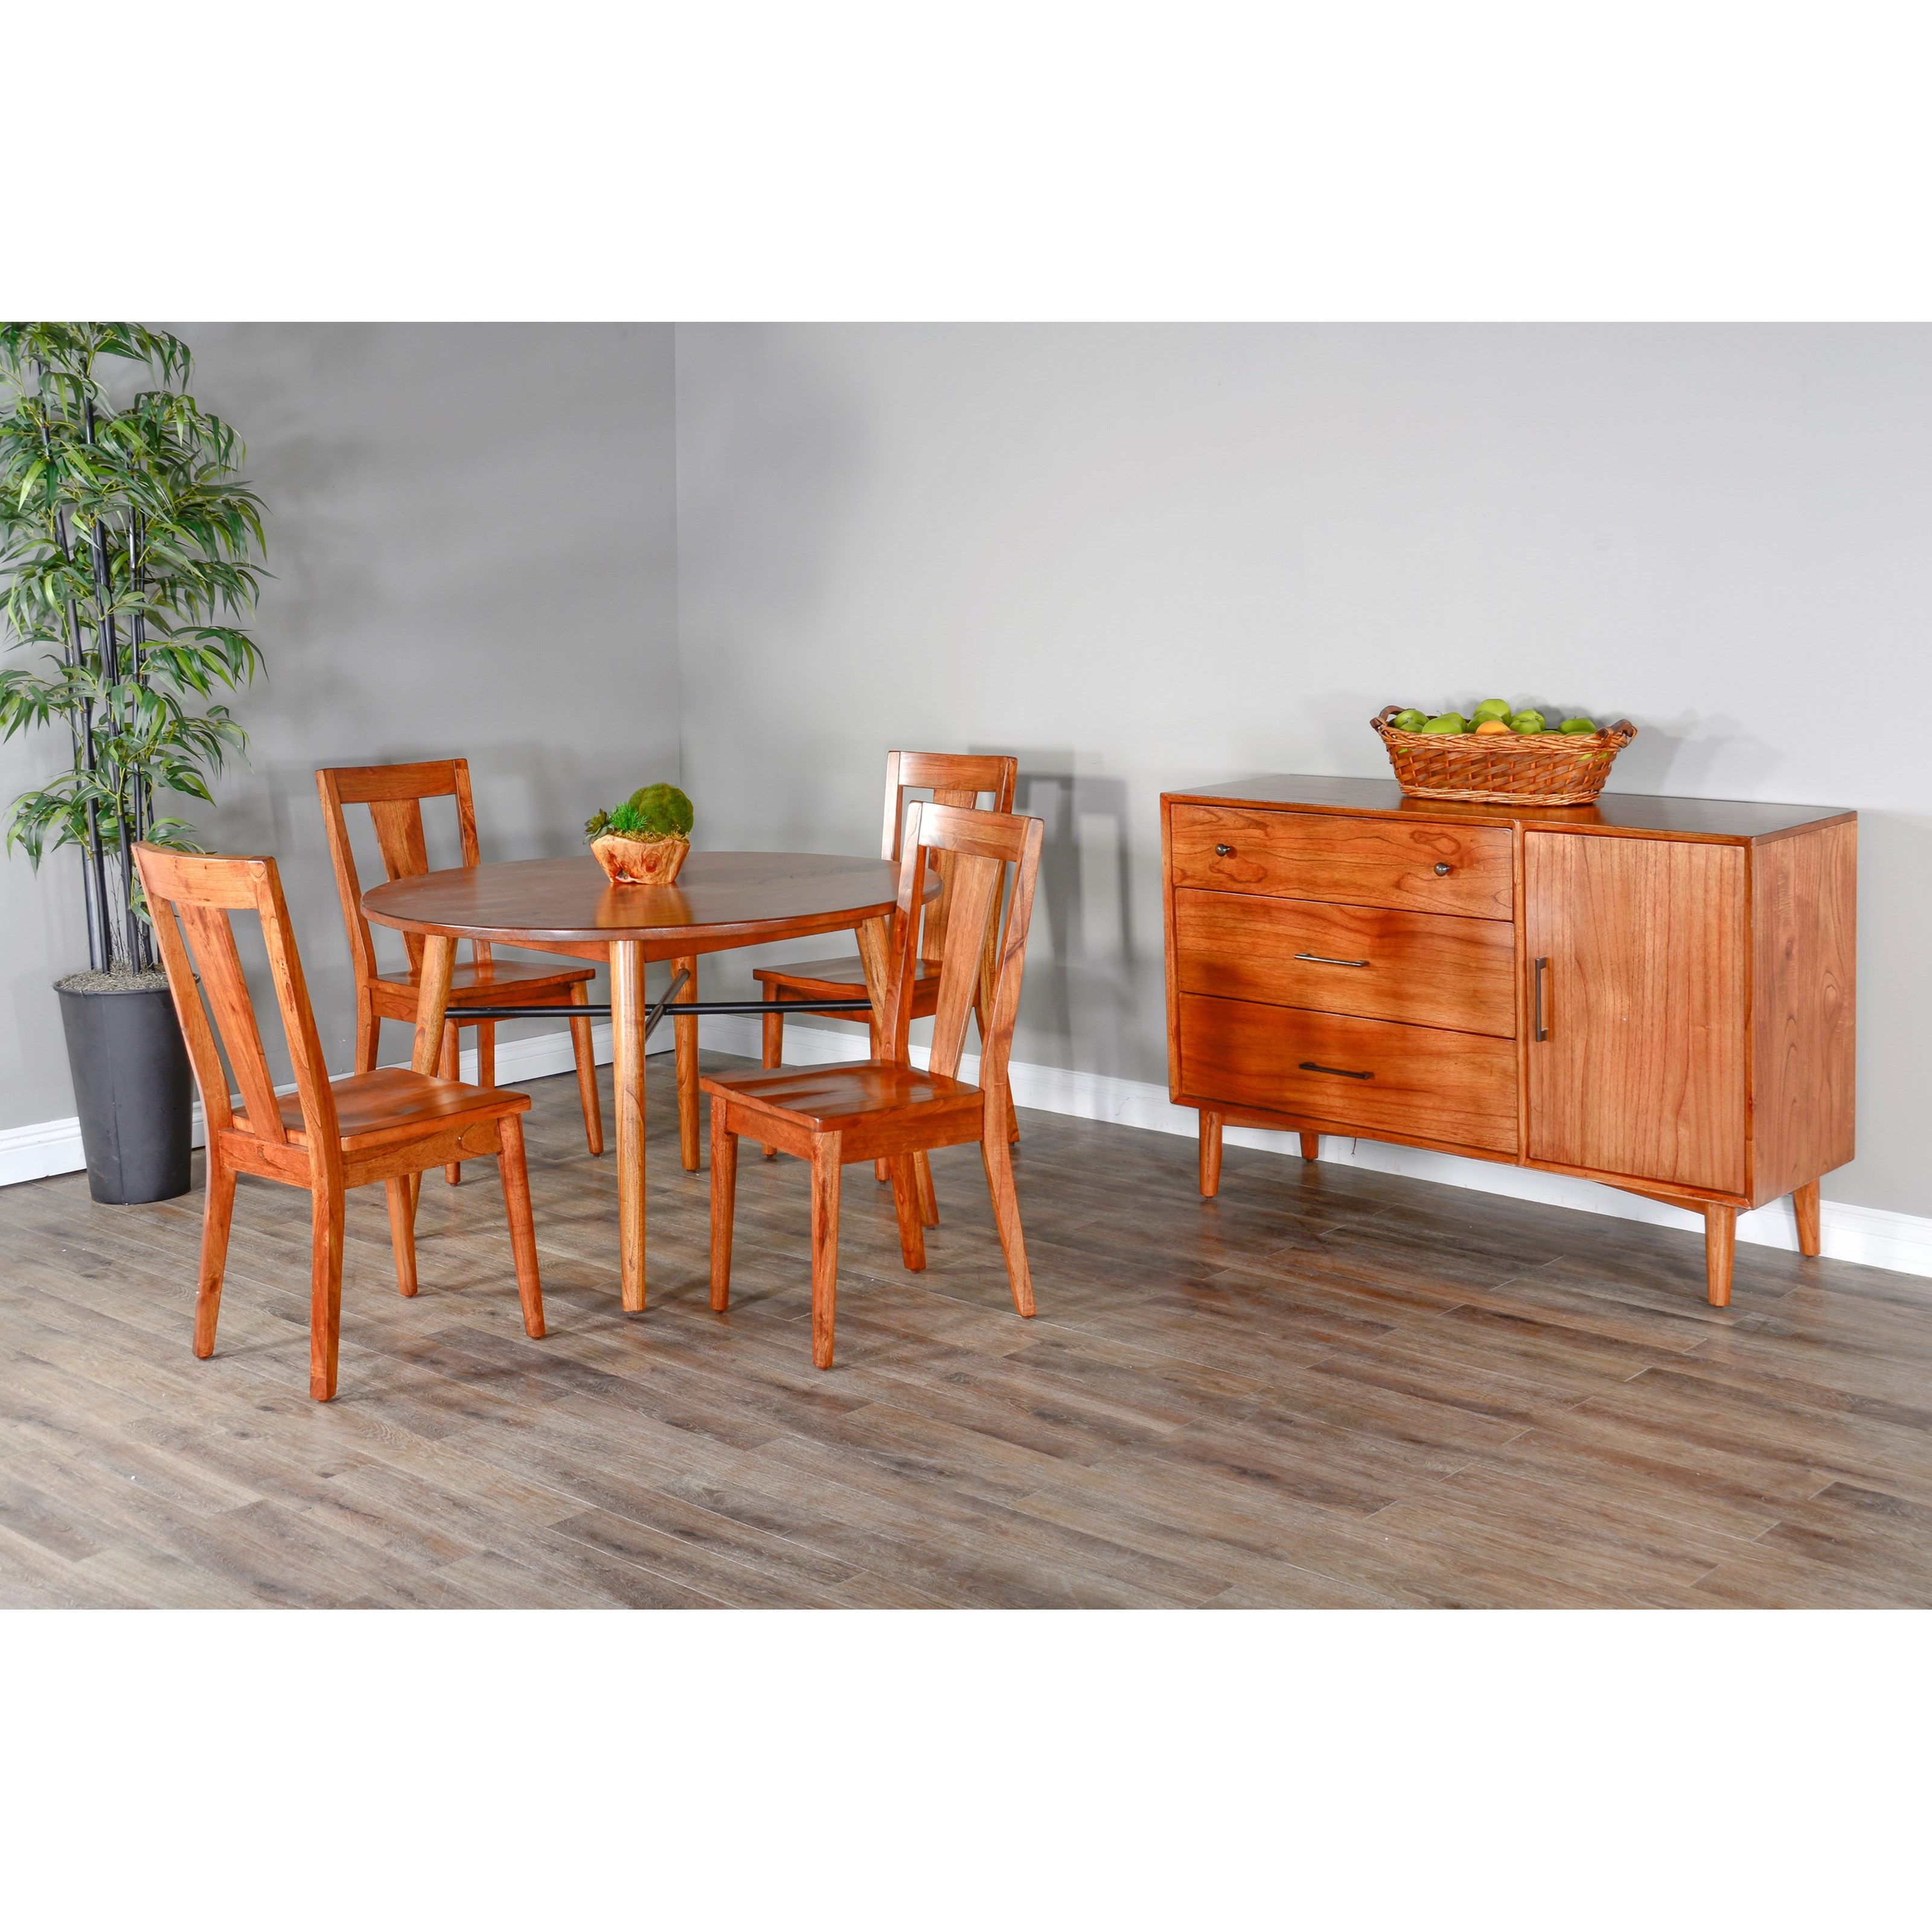 American Modern Dining Room Group by Sunny Designs at Home Furnishings Direct